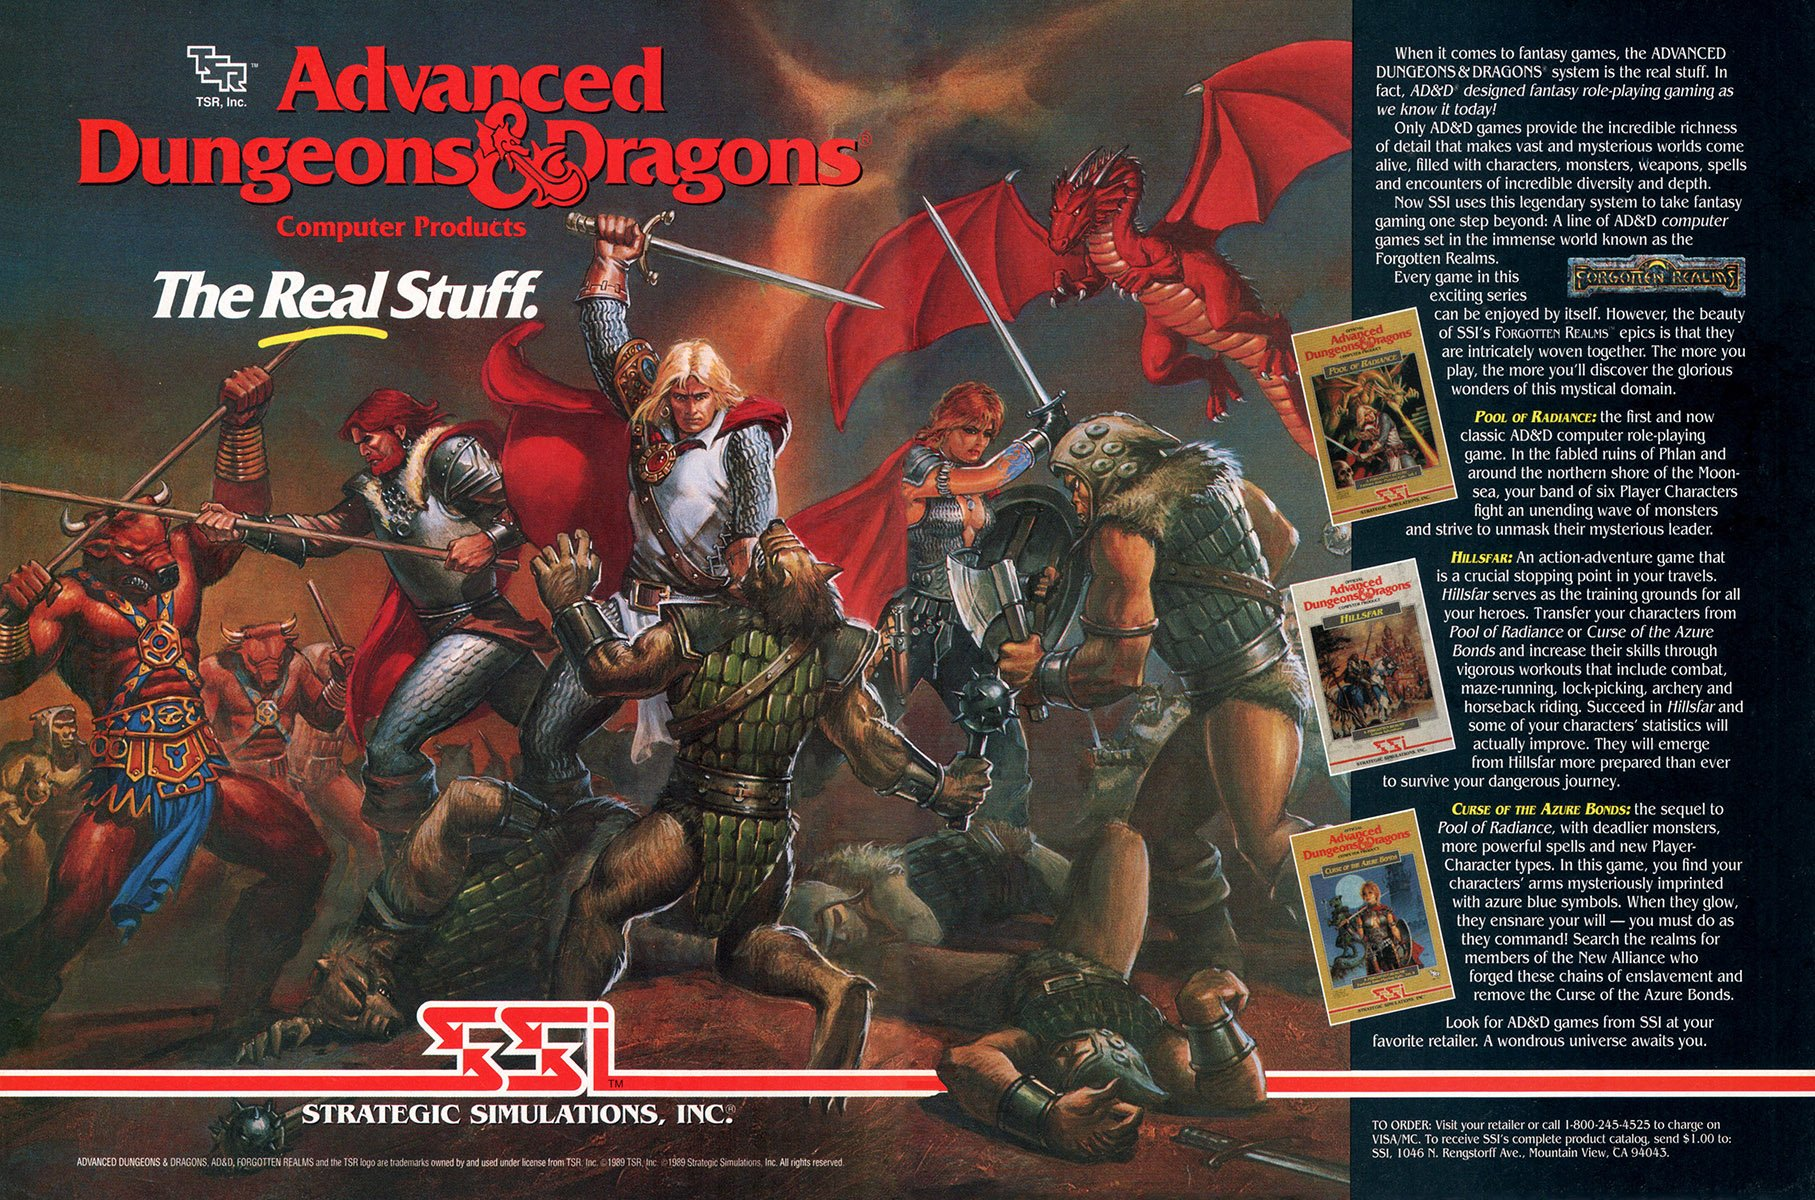 Advanced Dungeons & Dragons: Pool of Radiance, Hillsfar, Curse of the Azure Bonds